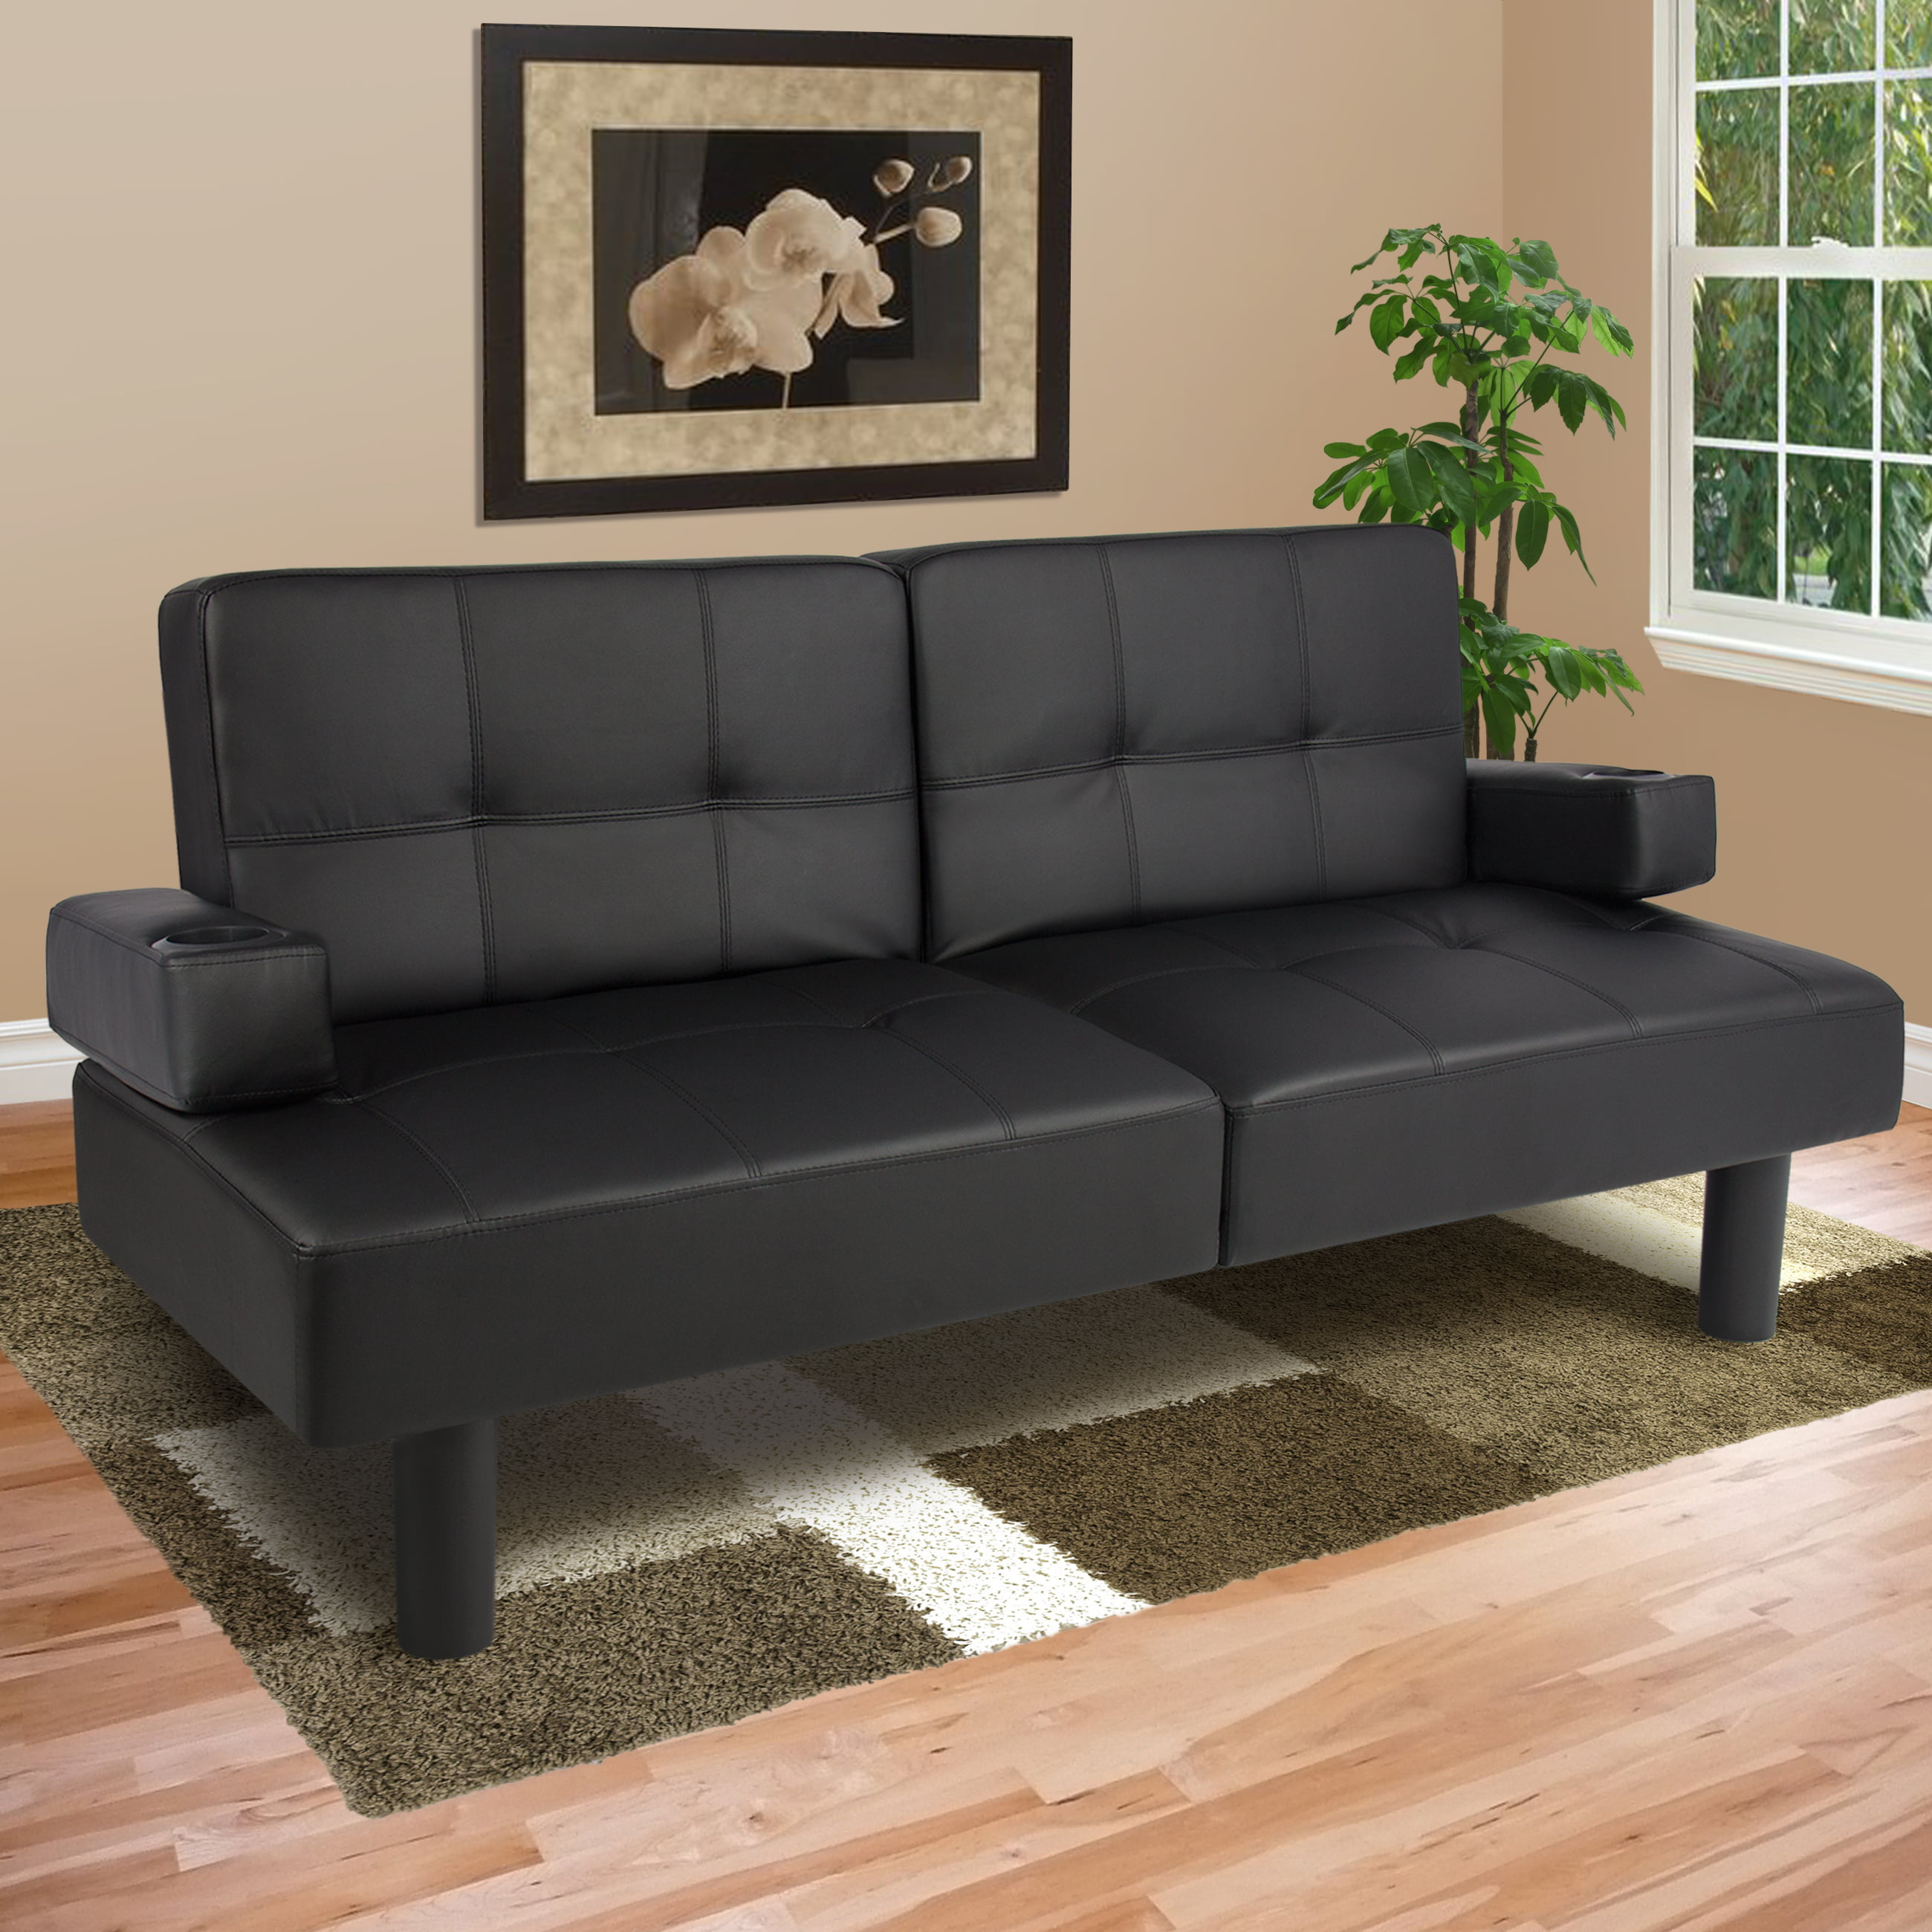 AC Pacific Kevin 3 Piece Sectional Sofa Set Walmart